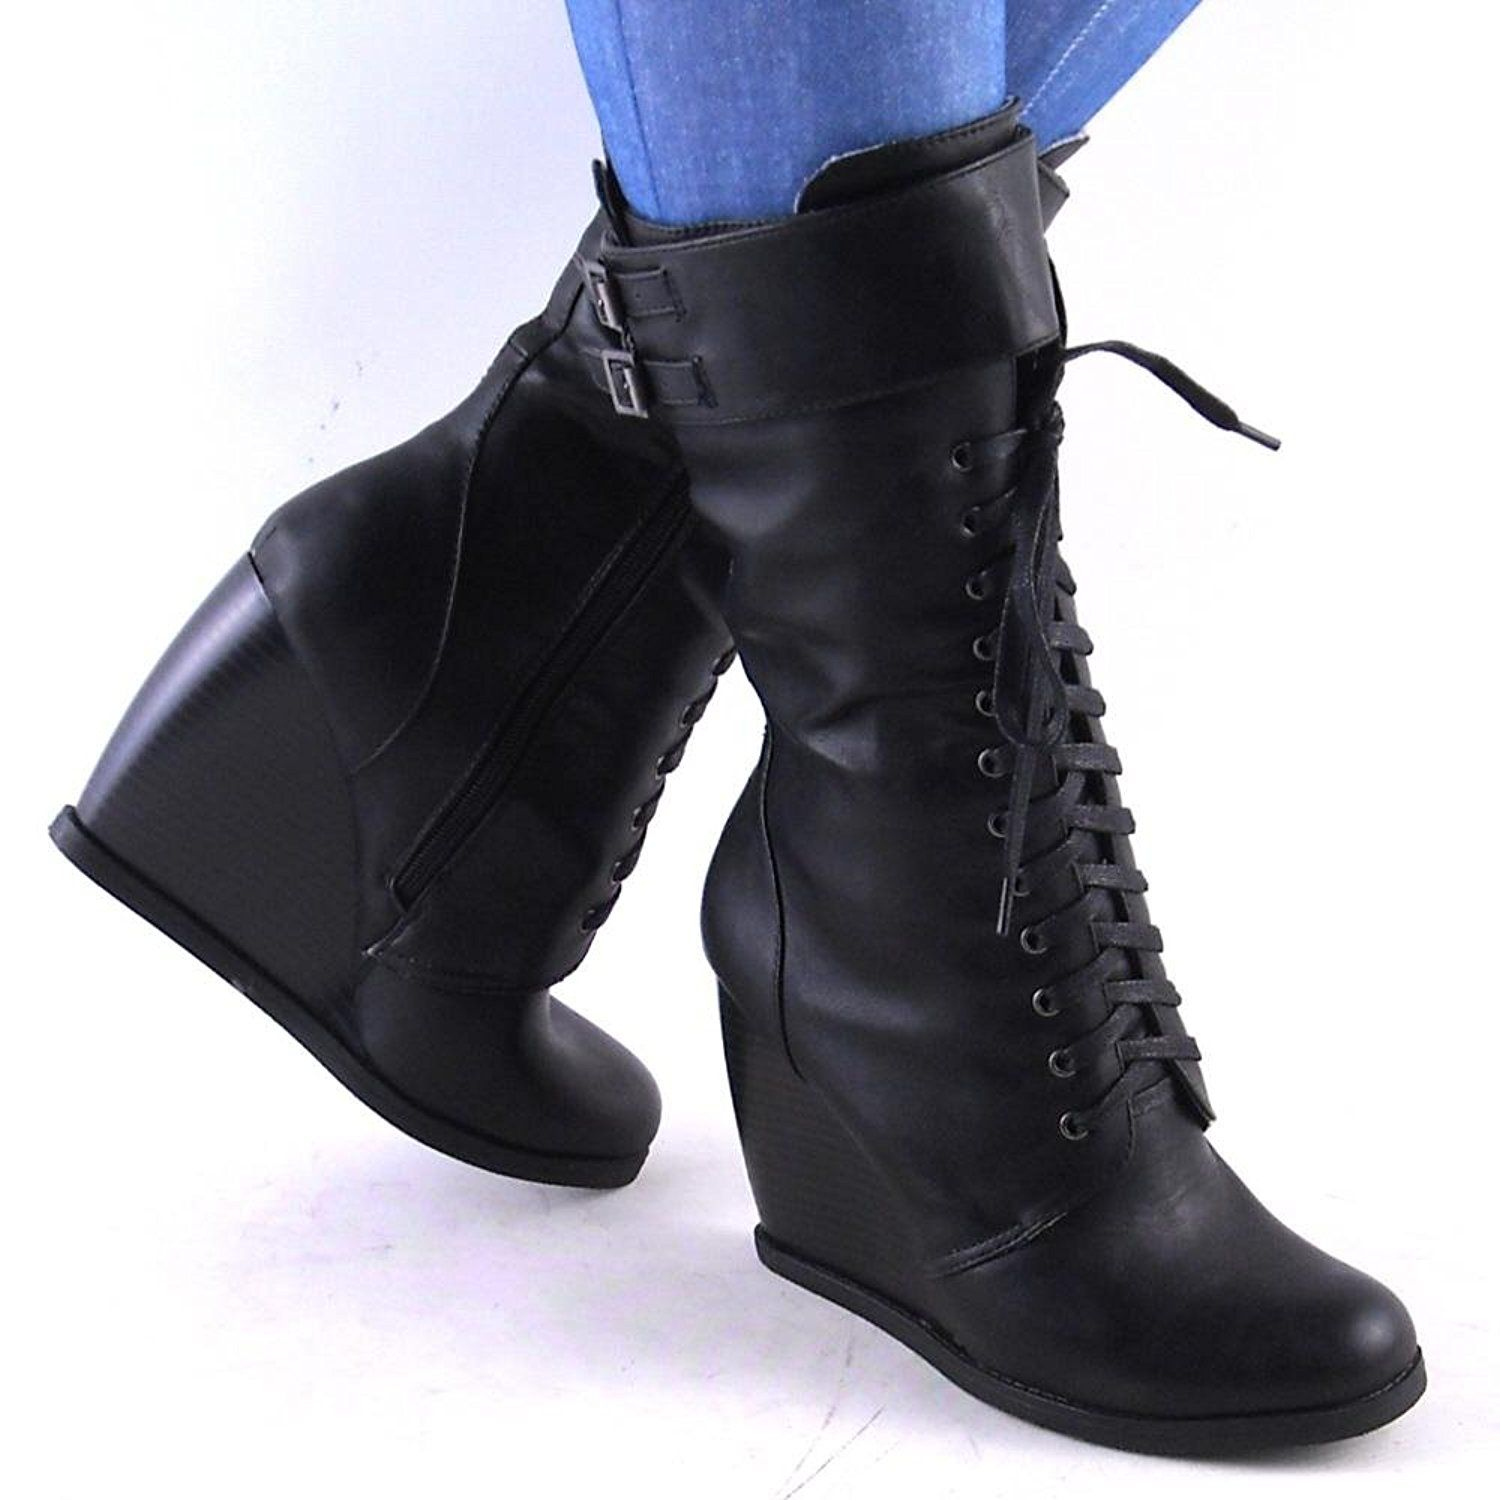 23d453465b2 Lilly by Dollhouse Womens Black Laceup High Wedge Heel Combat Boots      Check out this great product. (This is an affiliate link and I receive a  commission ...